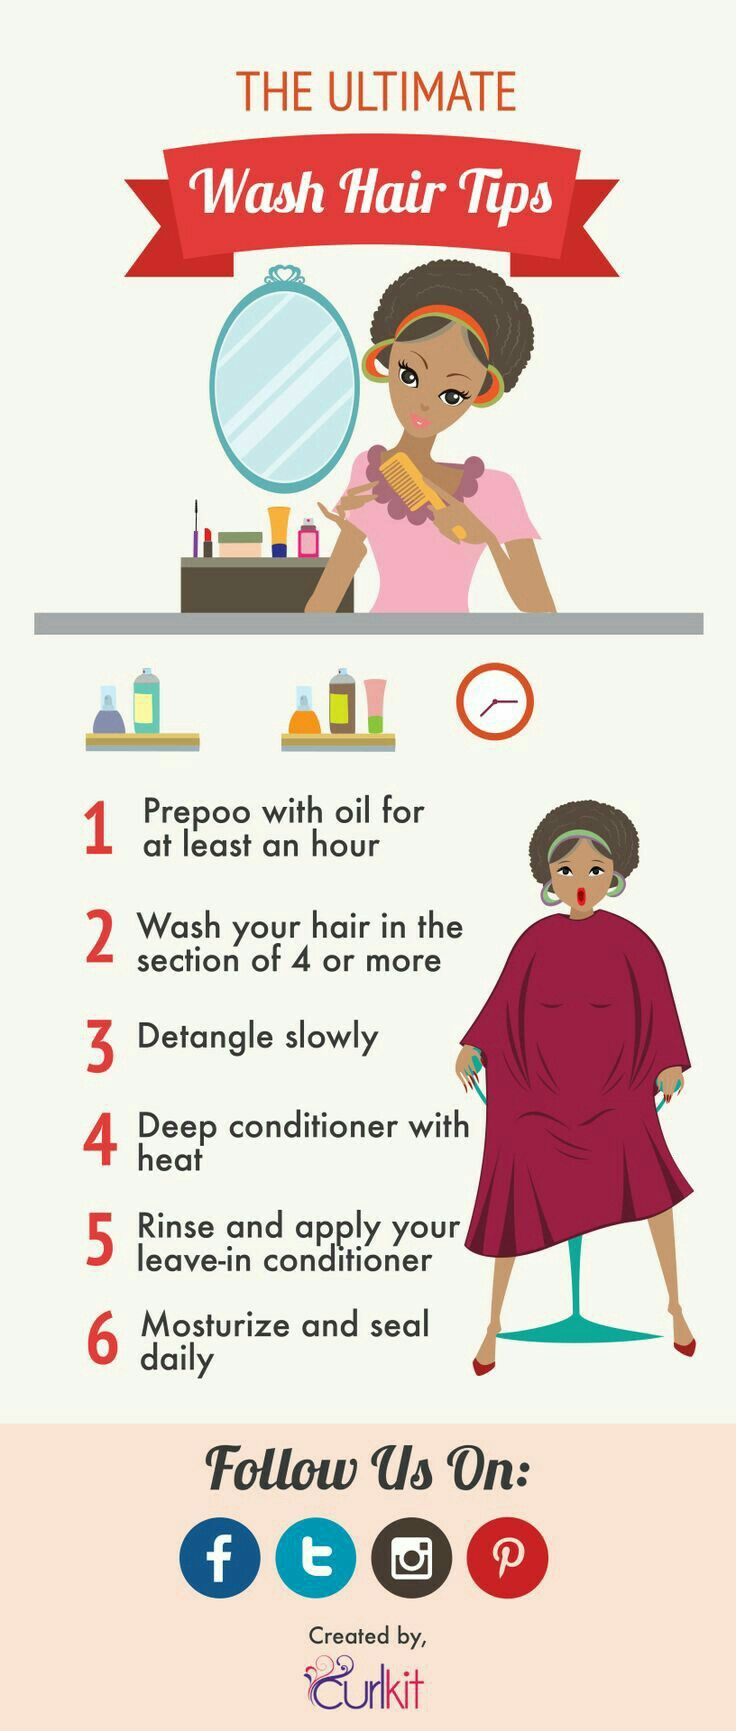 How To Take Care Of Hair After Temporary Straightening And